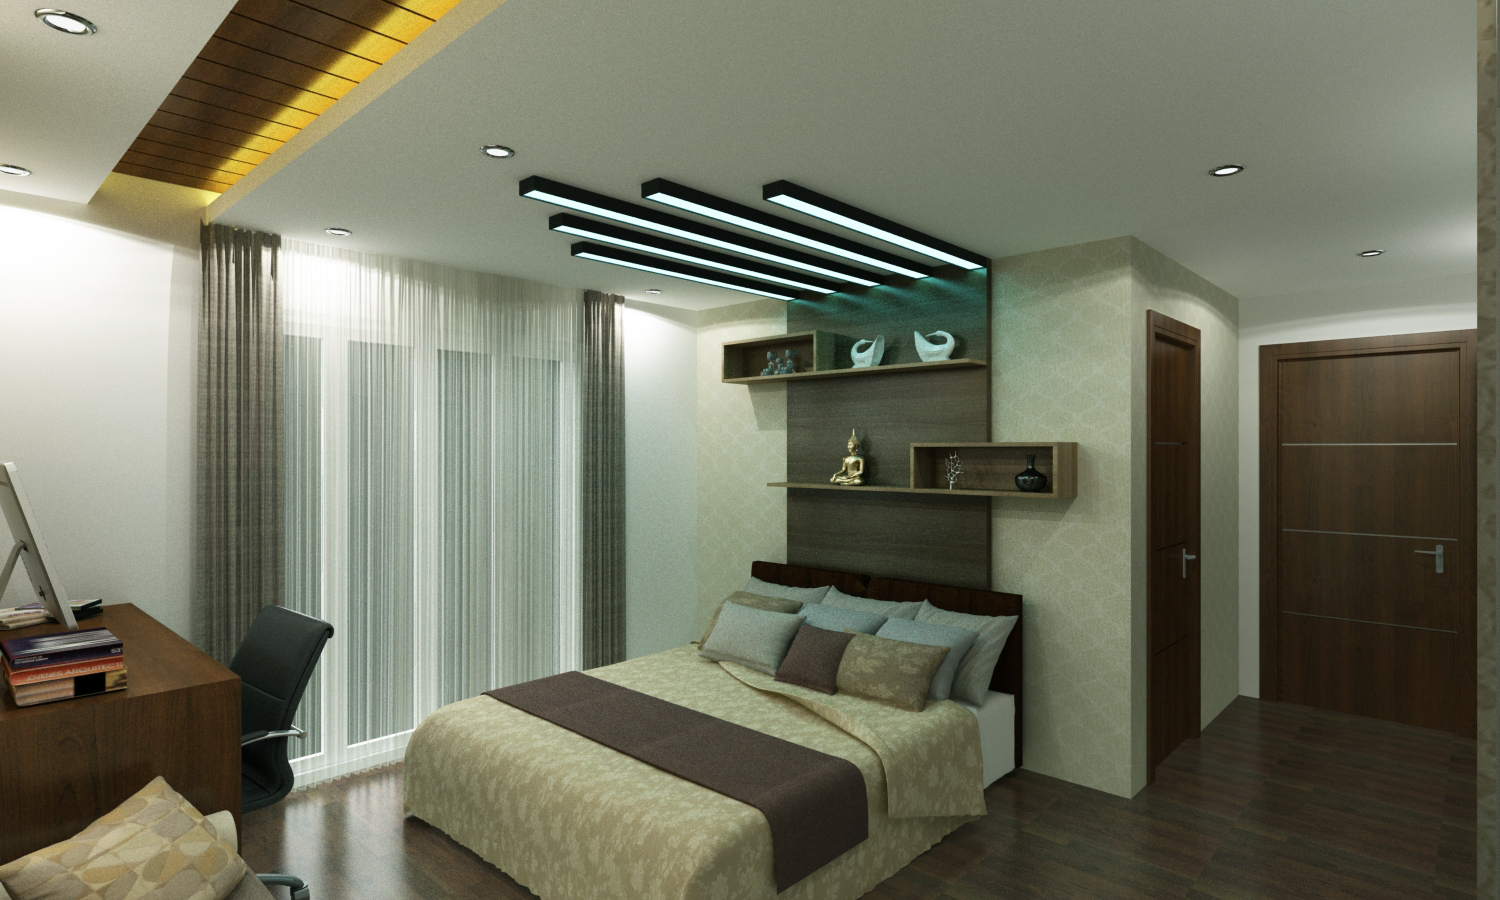 Best interior designers in hyderabad best interior for Apartment interior design hyderabad